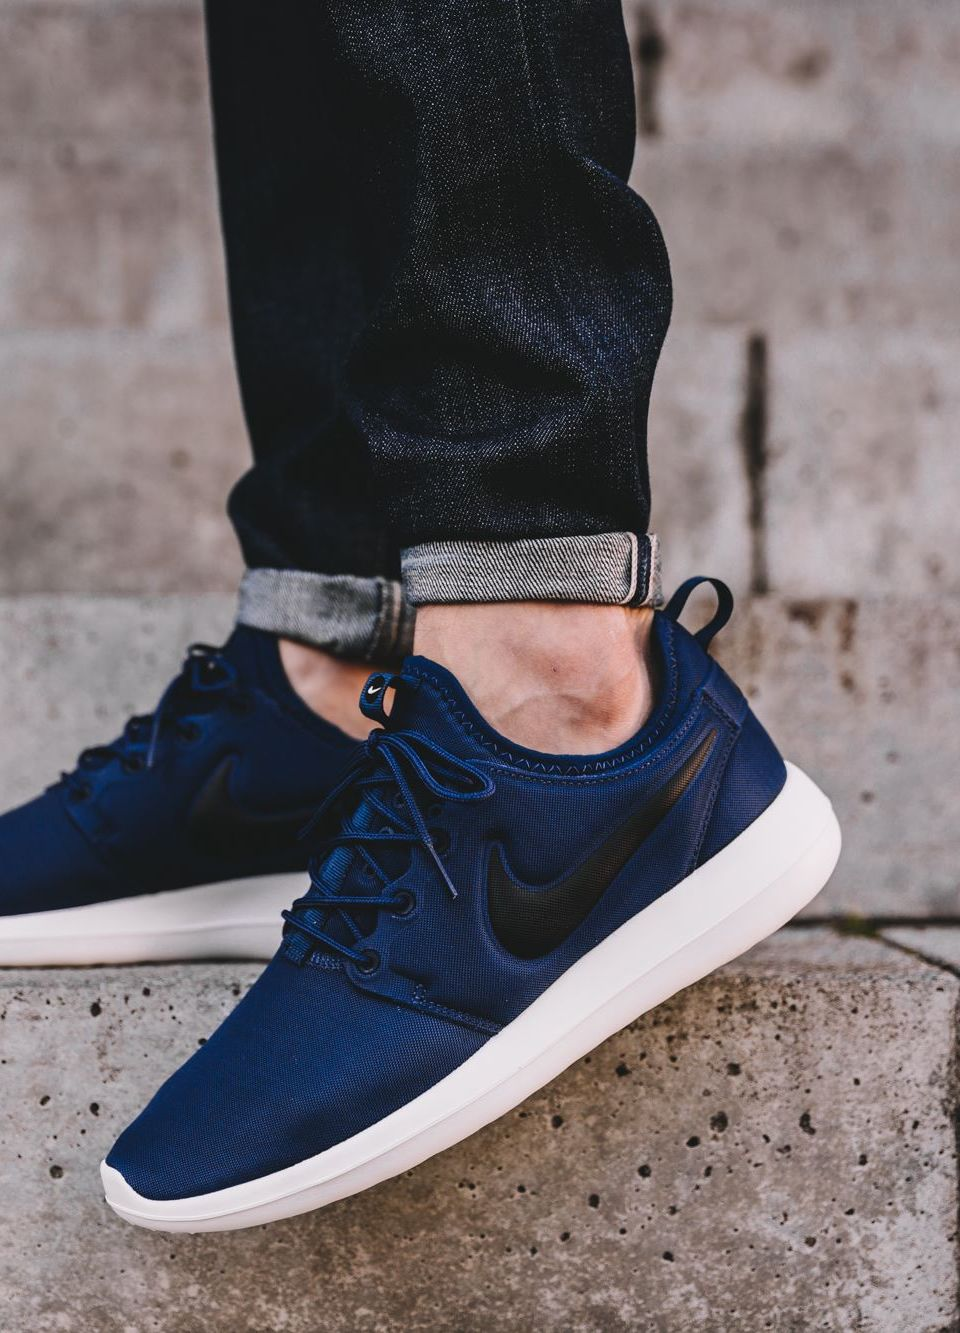 wholesale dealer 3c975 ebbfe Nike Roshe Two 'Midnight Navy' | MENSWEAR in 2019 | Nike ...